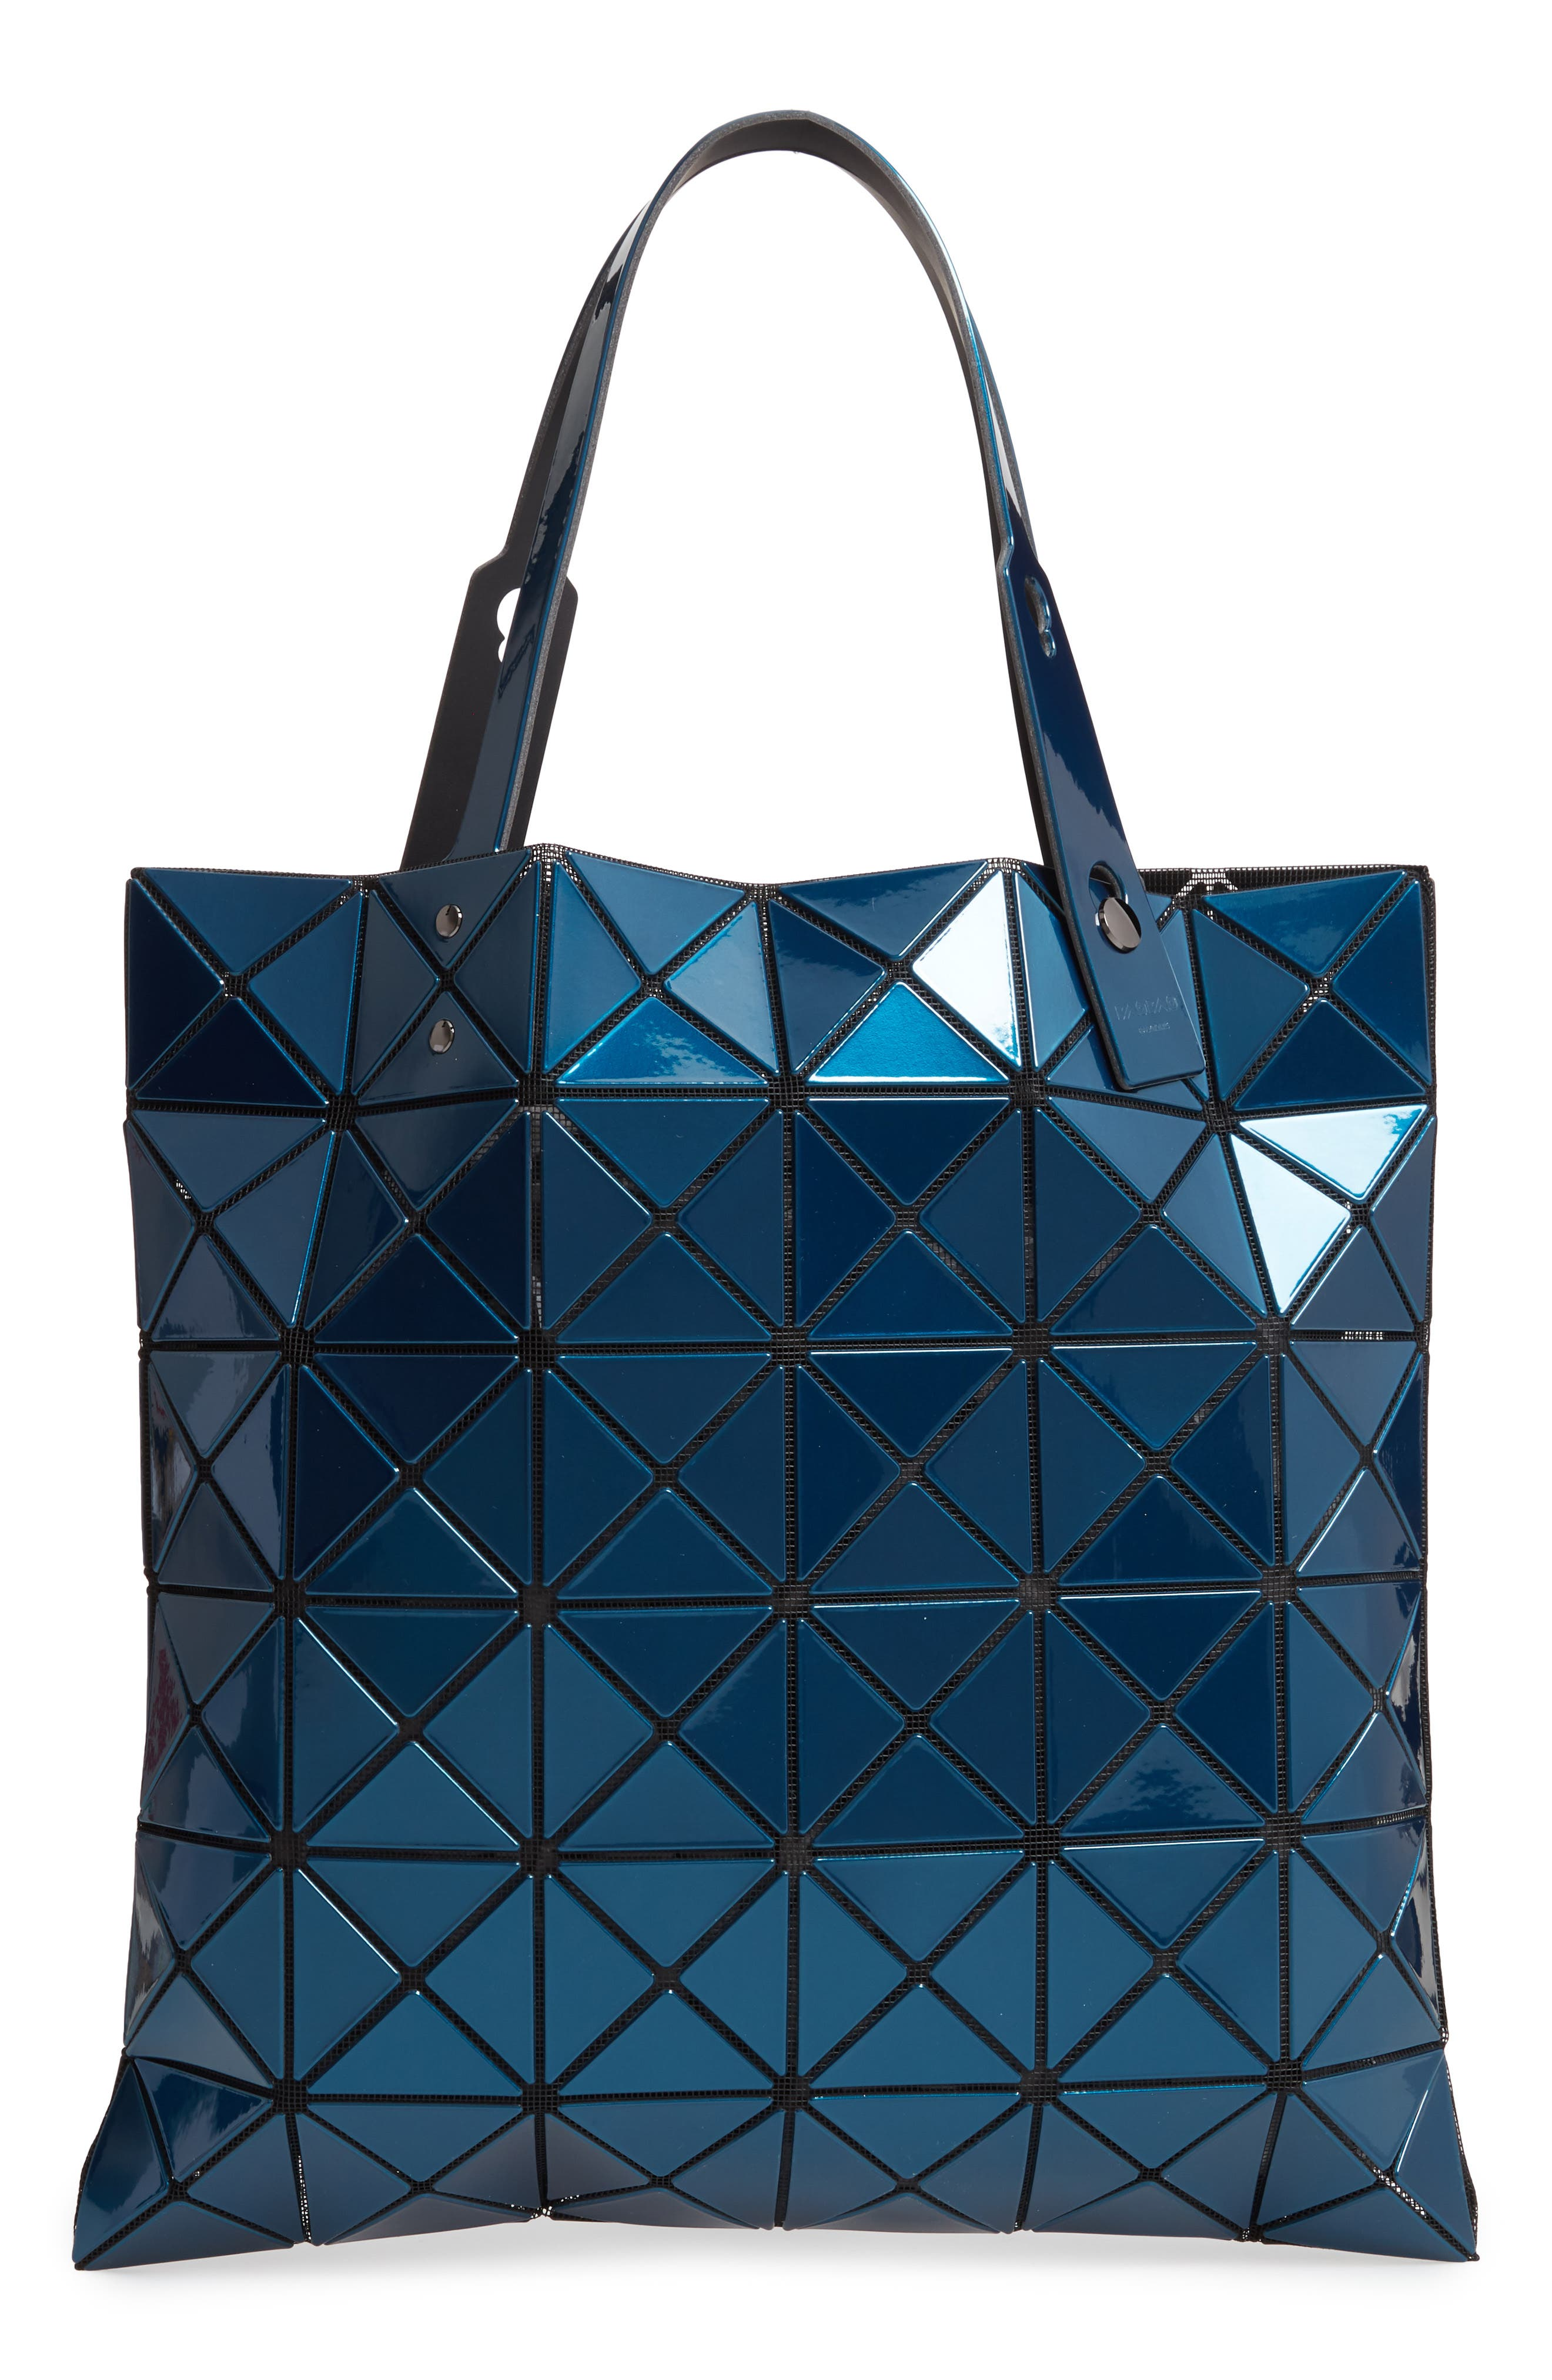 Lucent Metallic Tote Bag - Blue